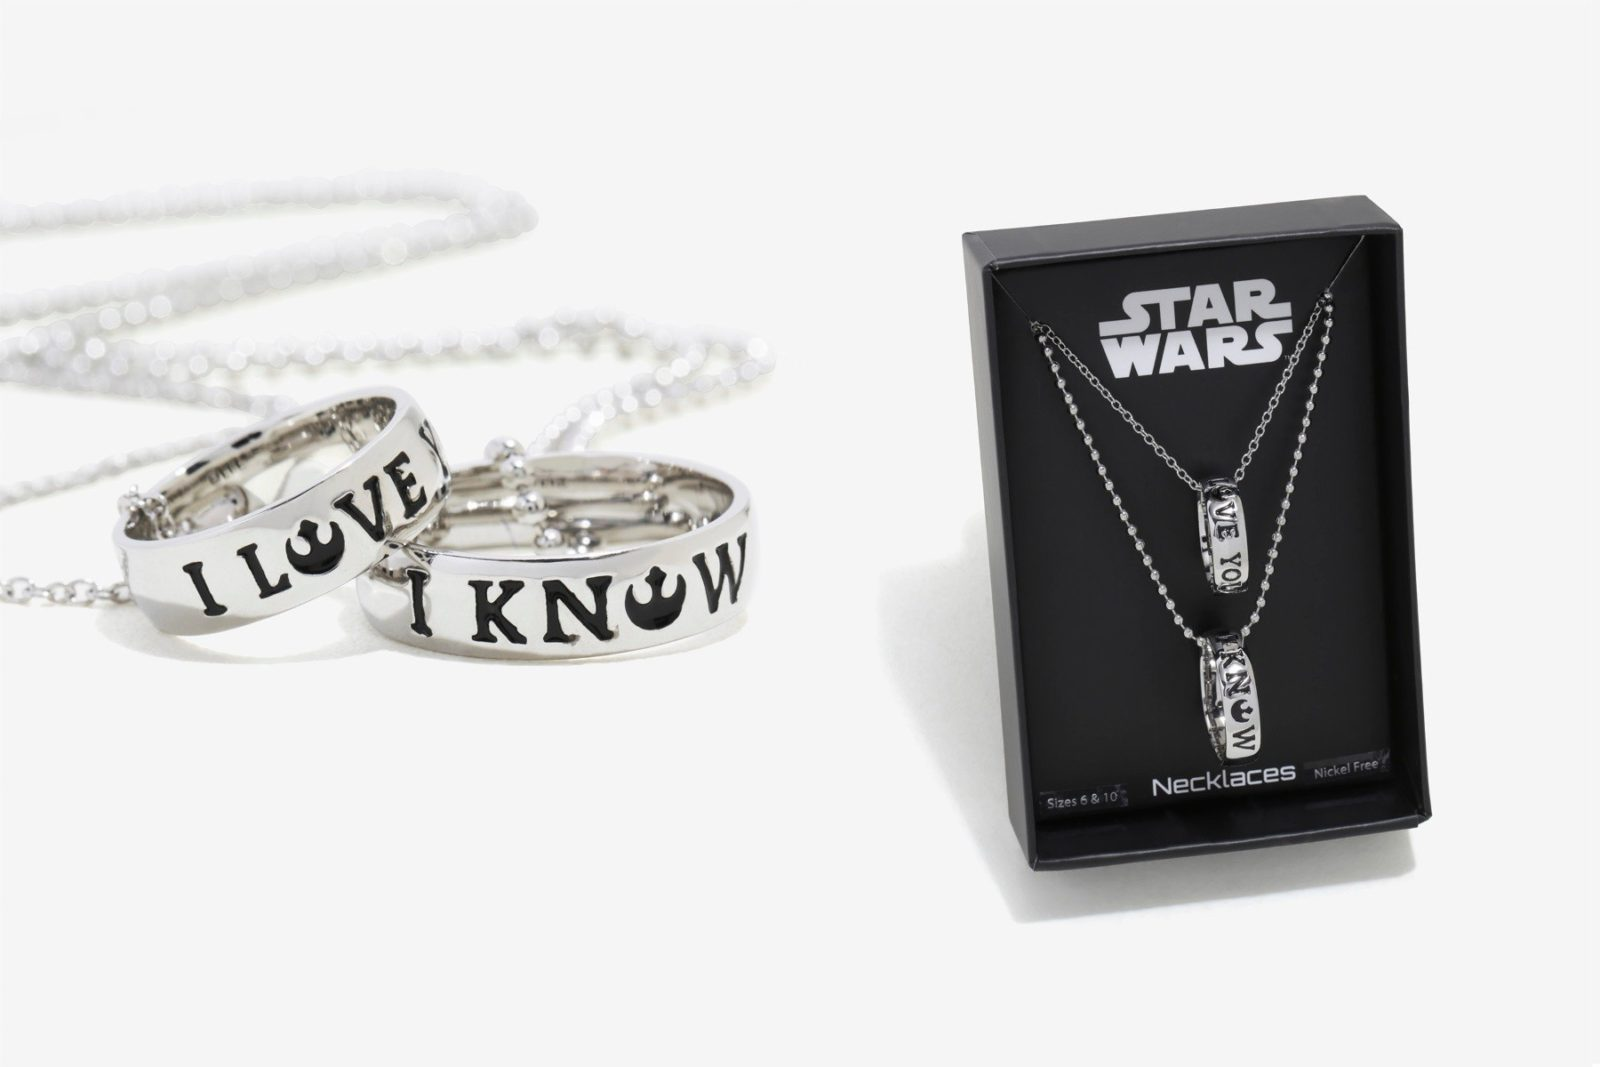 New 'I Love You' – 'I Know' ring necklace set